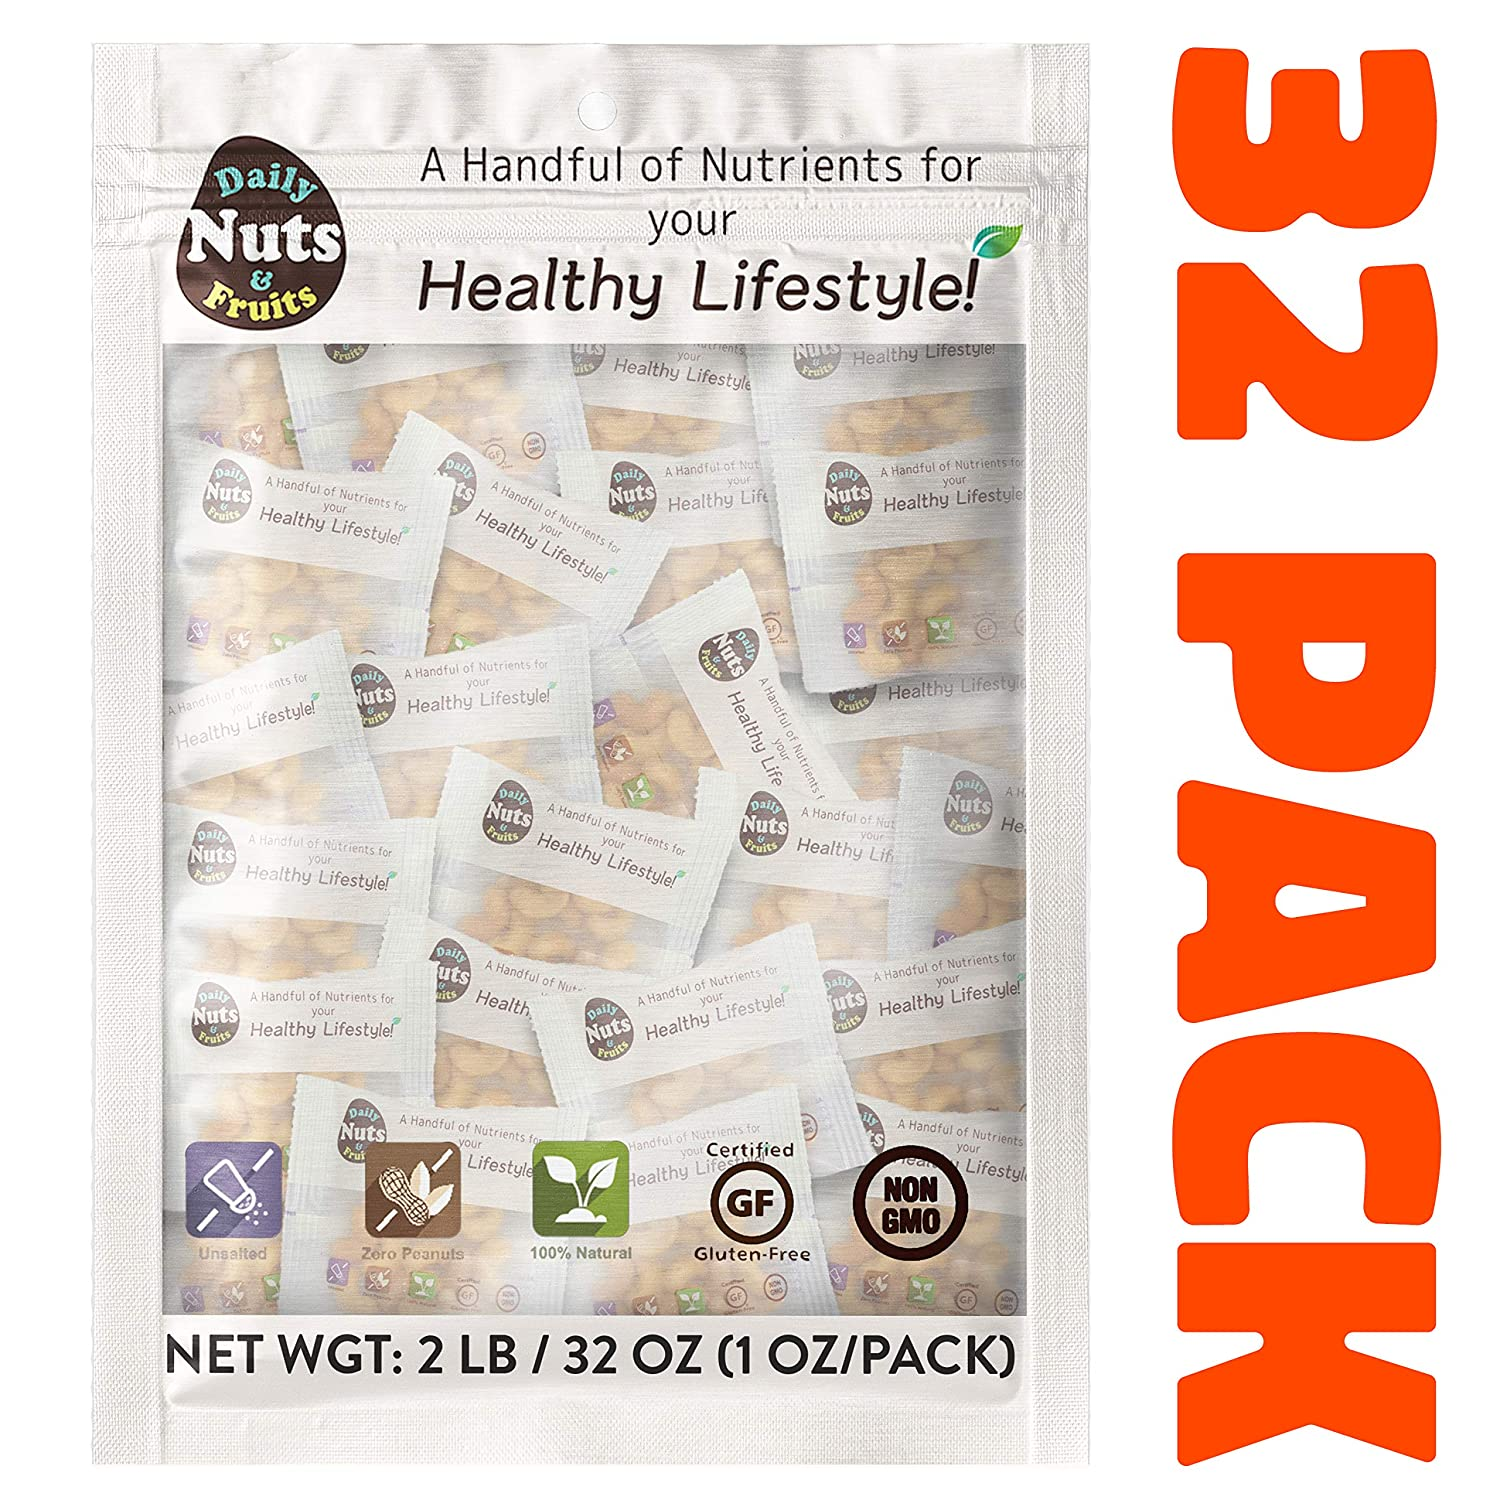 """""""Just Cashews"""" 2 LB, WHOLE-KERNEL (Fresh Light-Roasted), 32 packs (1 oz), UN-SALTED, No Additives, On the go, Natural,On the Go,Multi Pack, Great for Keto Diet! (KOSHER CERTIFIED)"""